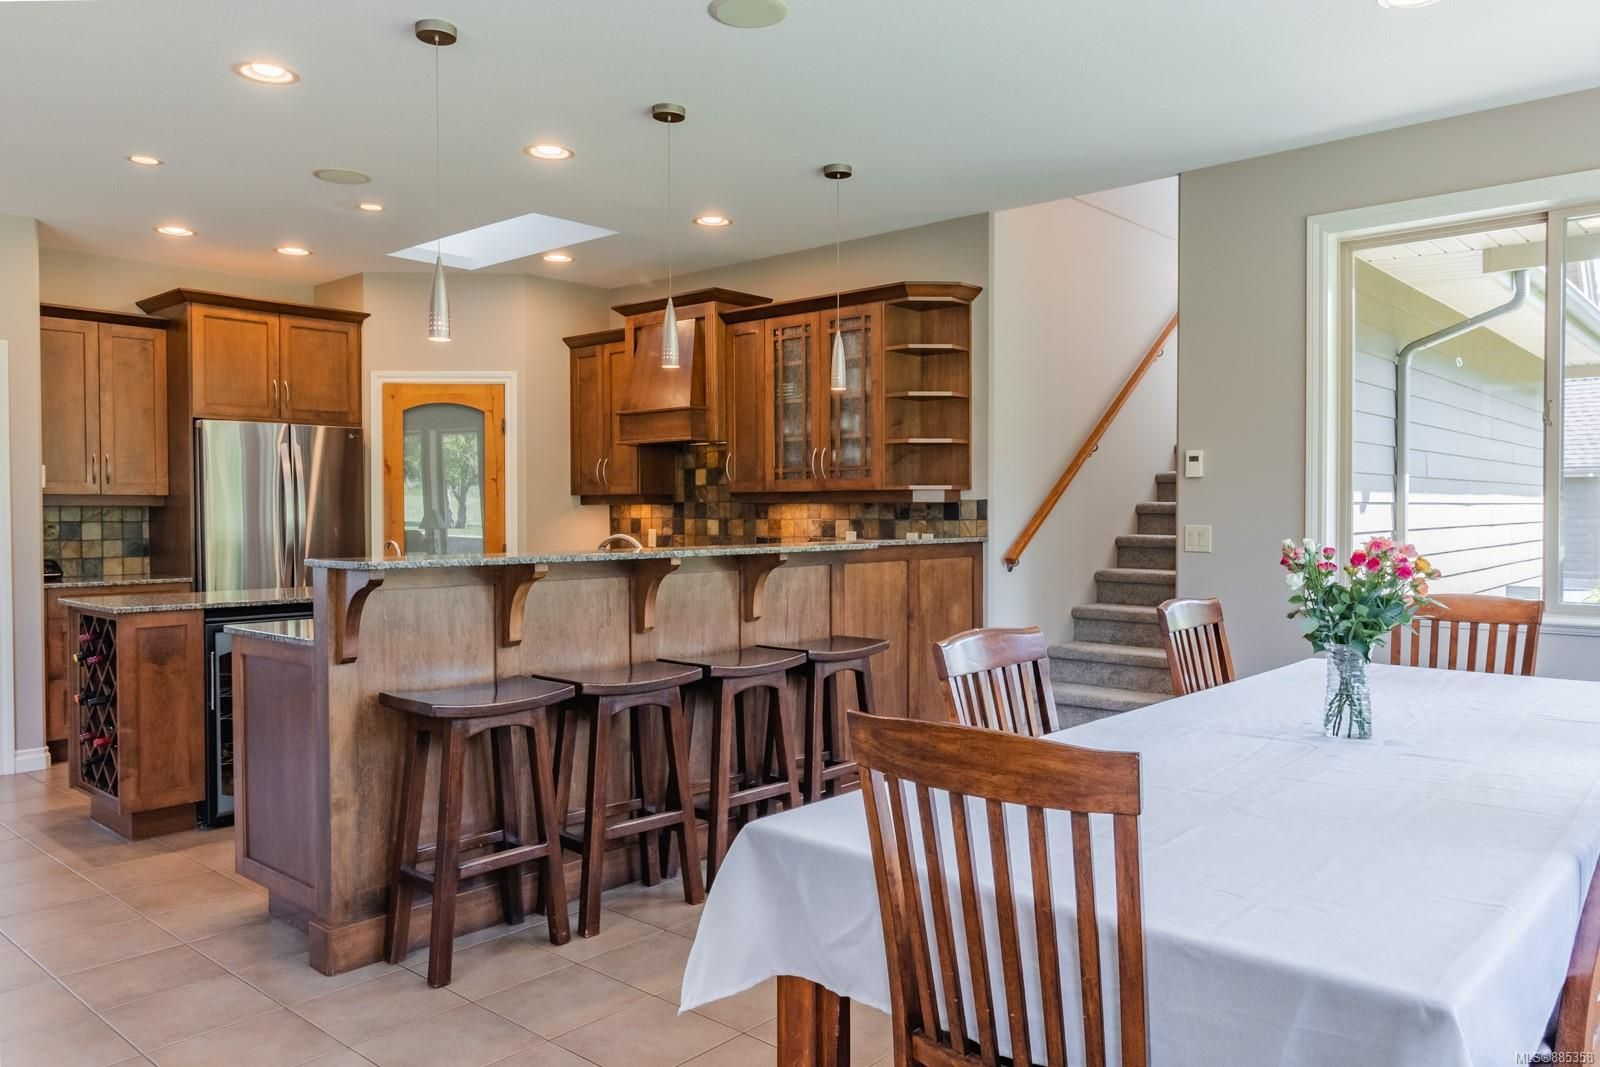 Photo 5: Photos: 2850 Peters Rd in : PQ Qualicum Beach House for sale (Parksville/Qualicum)  : MLS®# 885358